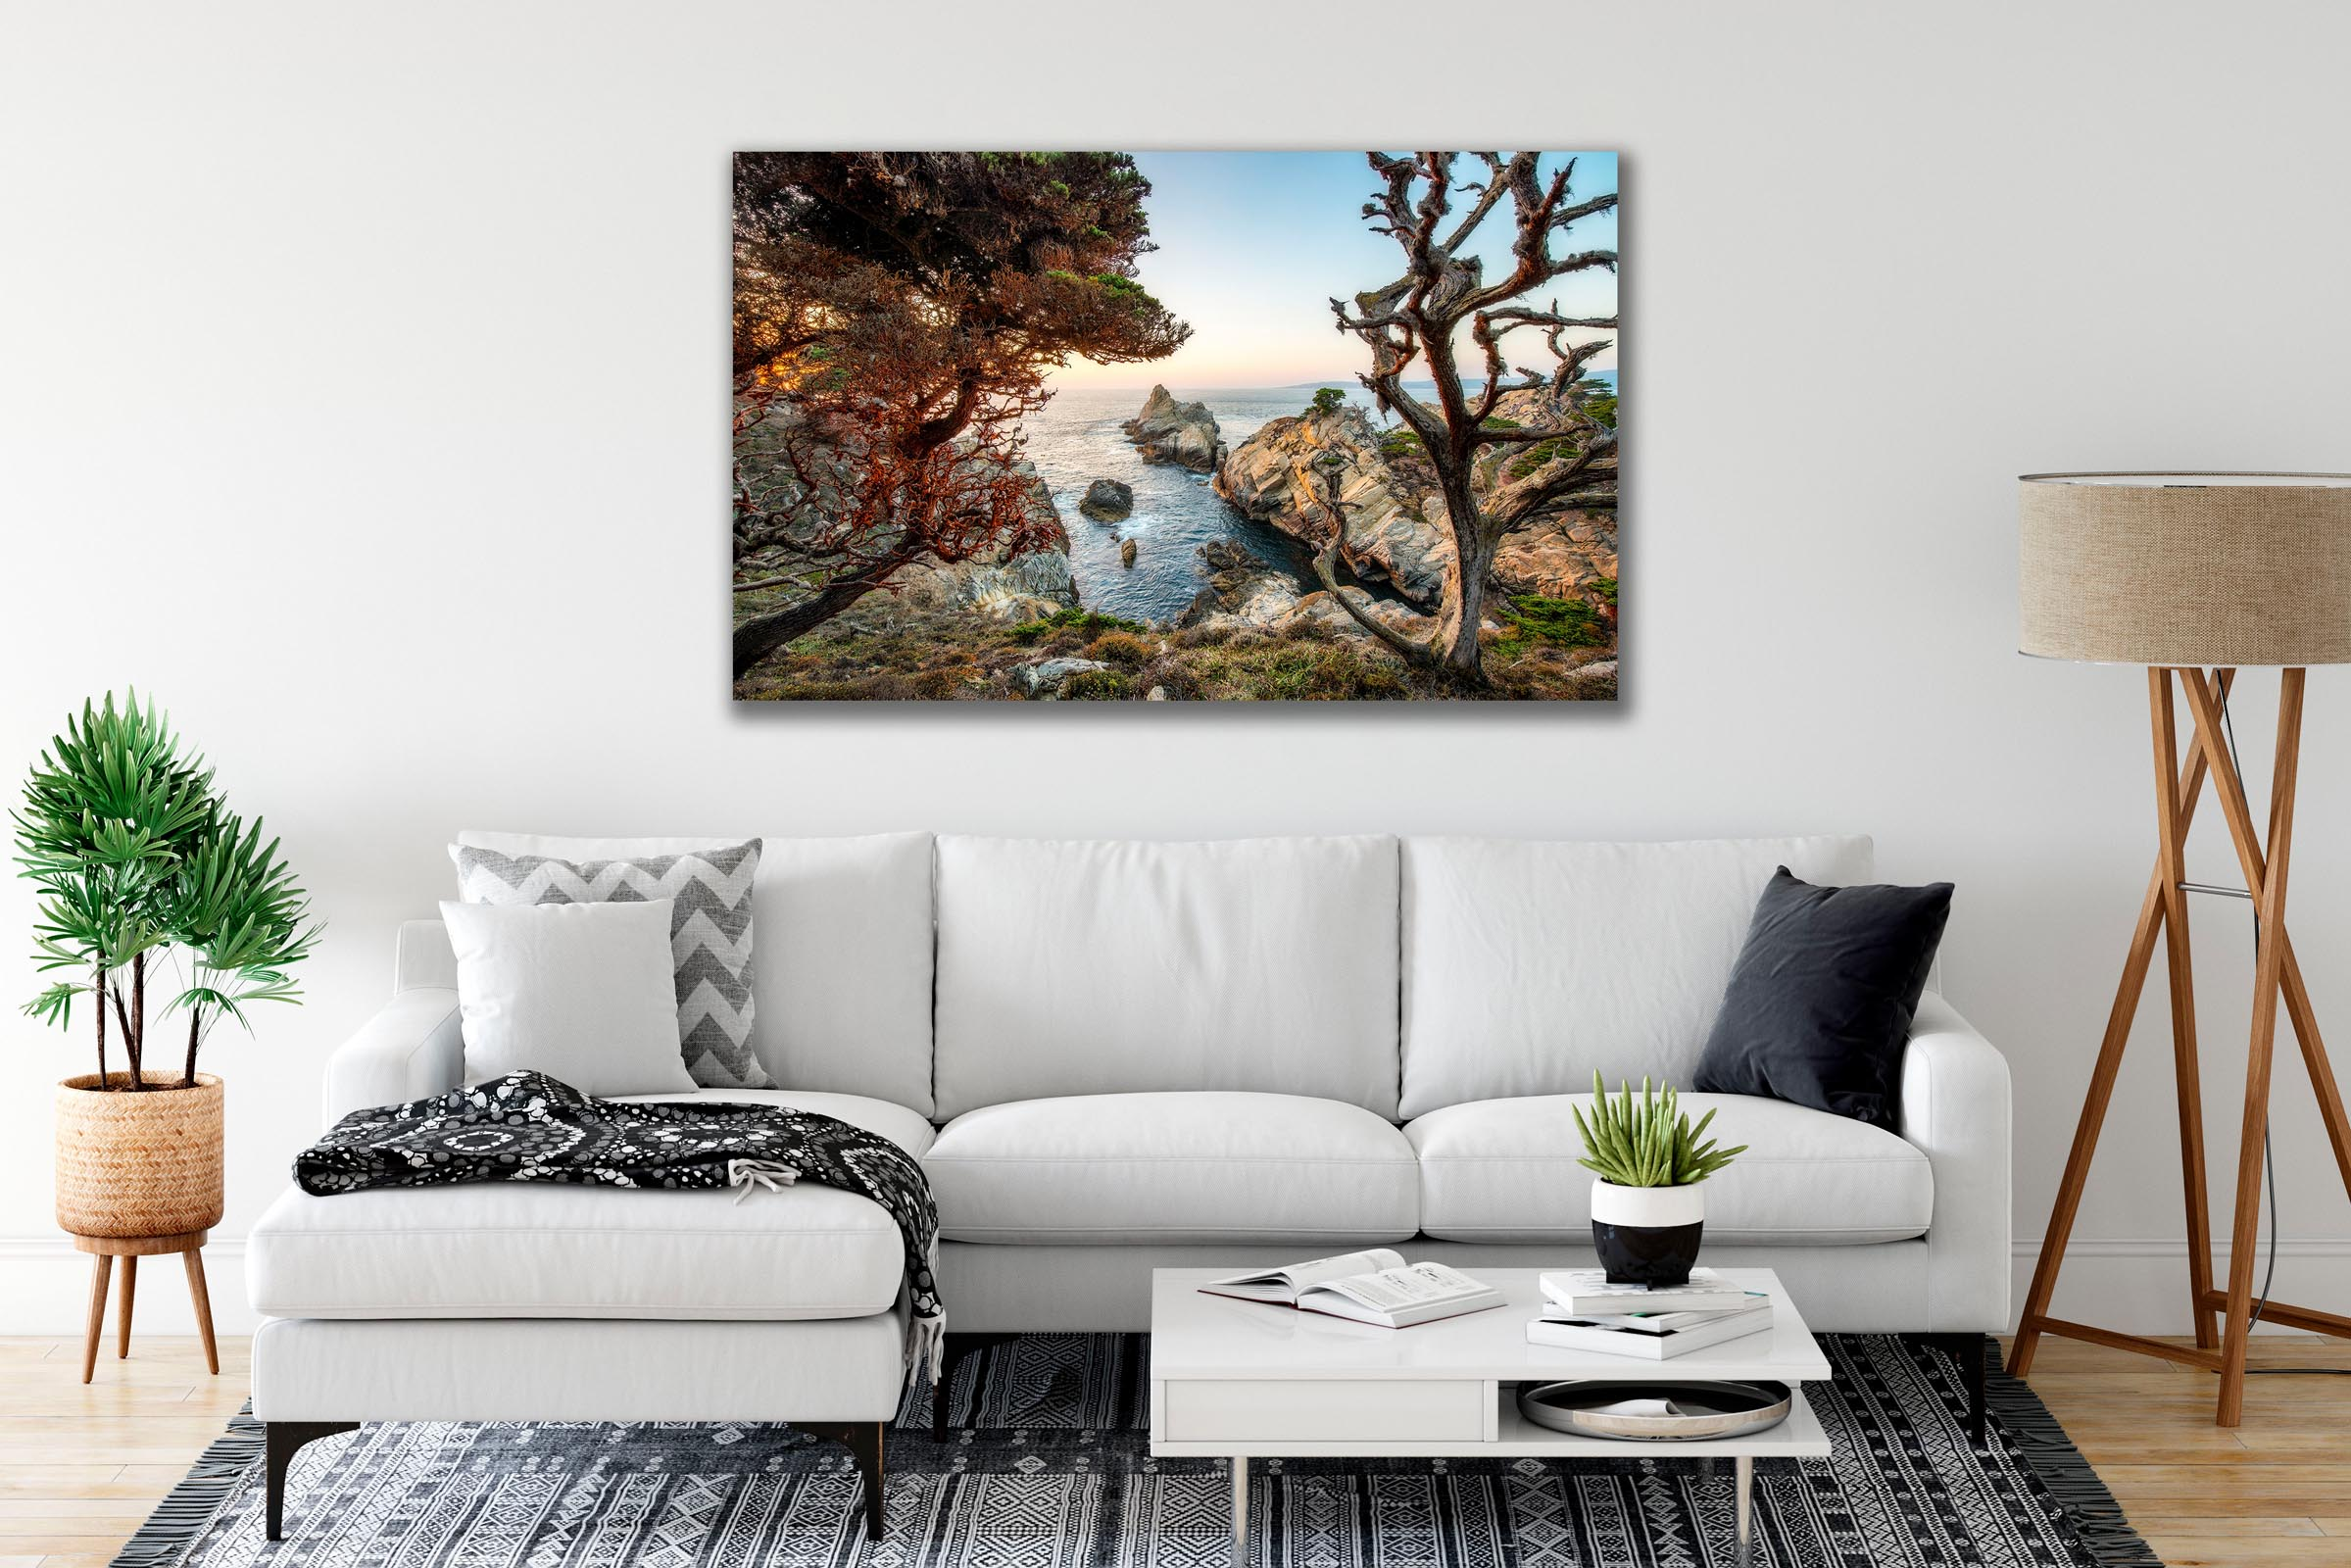 Wall art of Point Lobos in Carmel, California by Brent Goldman Photography